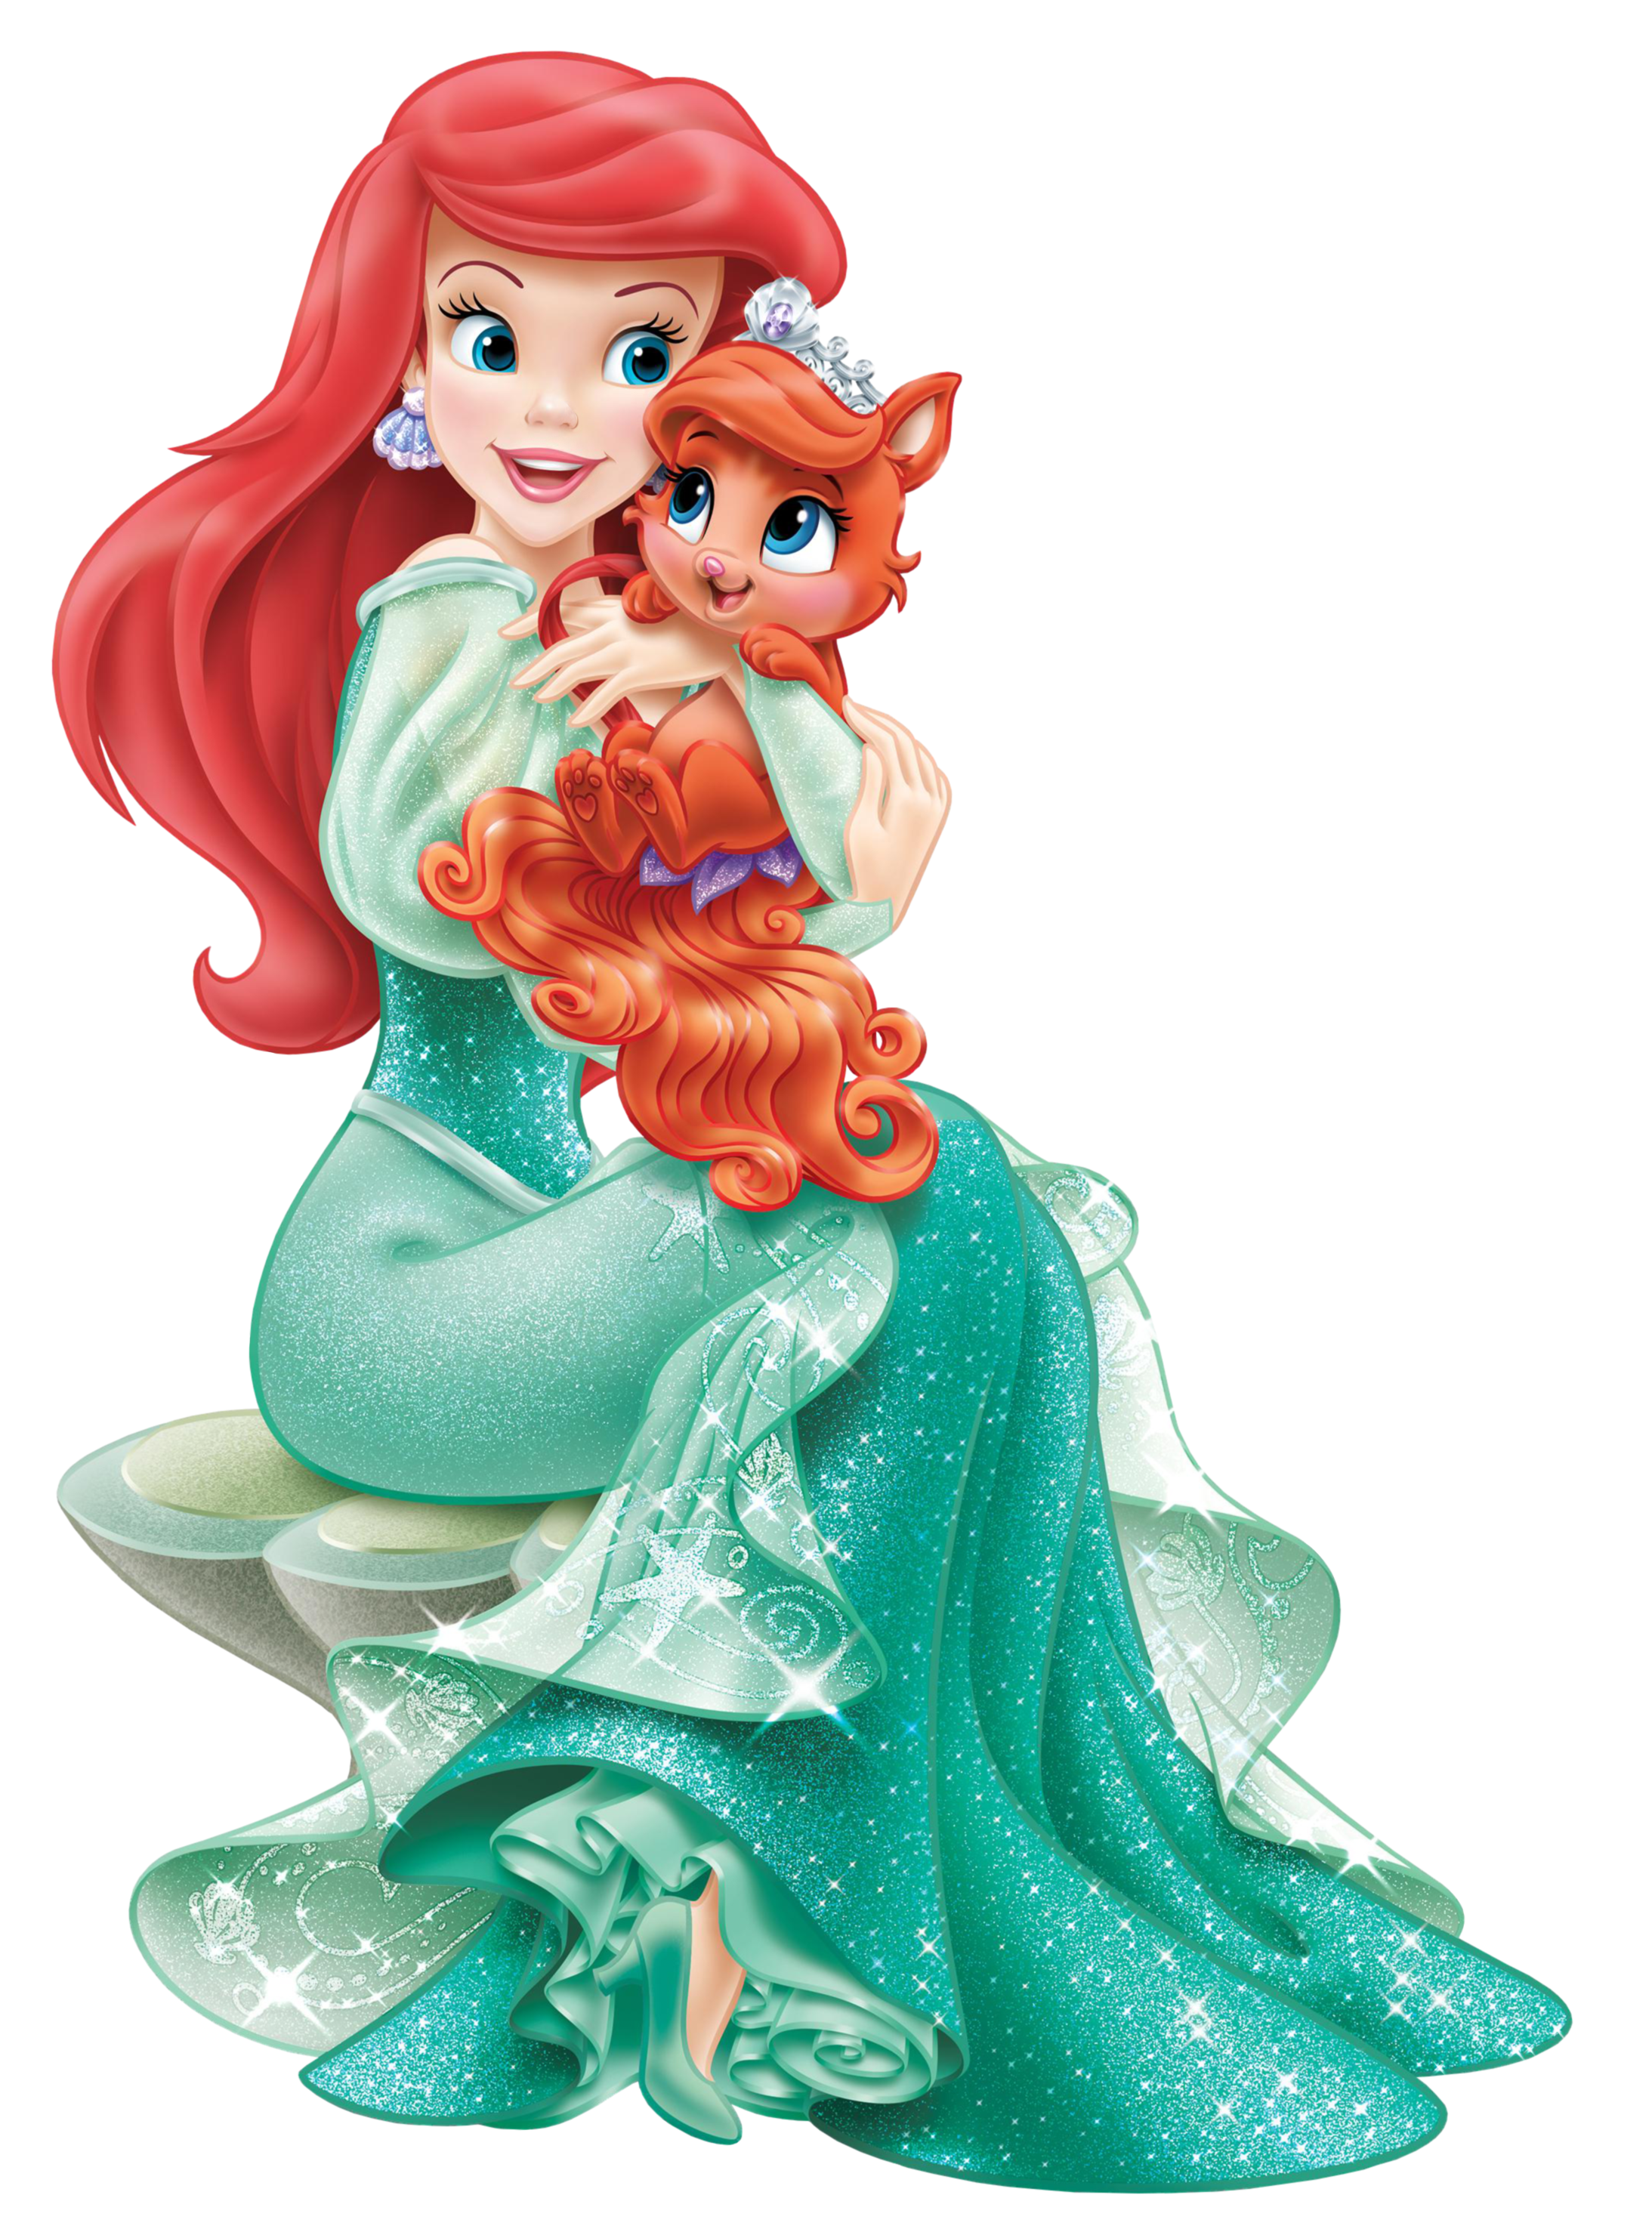 Disney Princess Ariel with Cute Kitten Transparent PNG Clip Art.